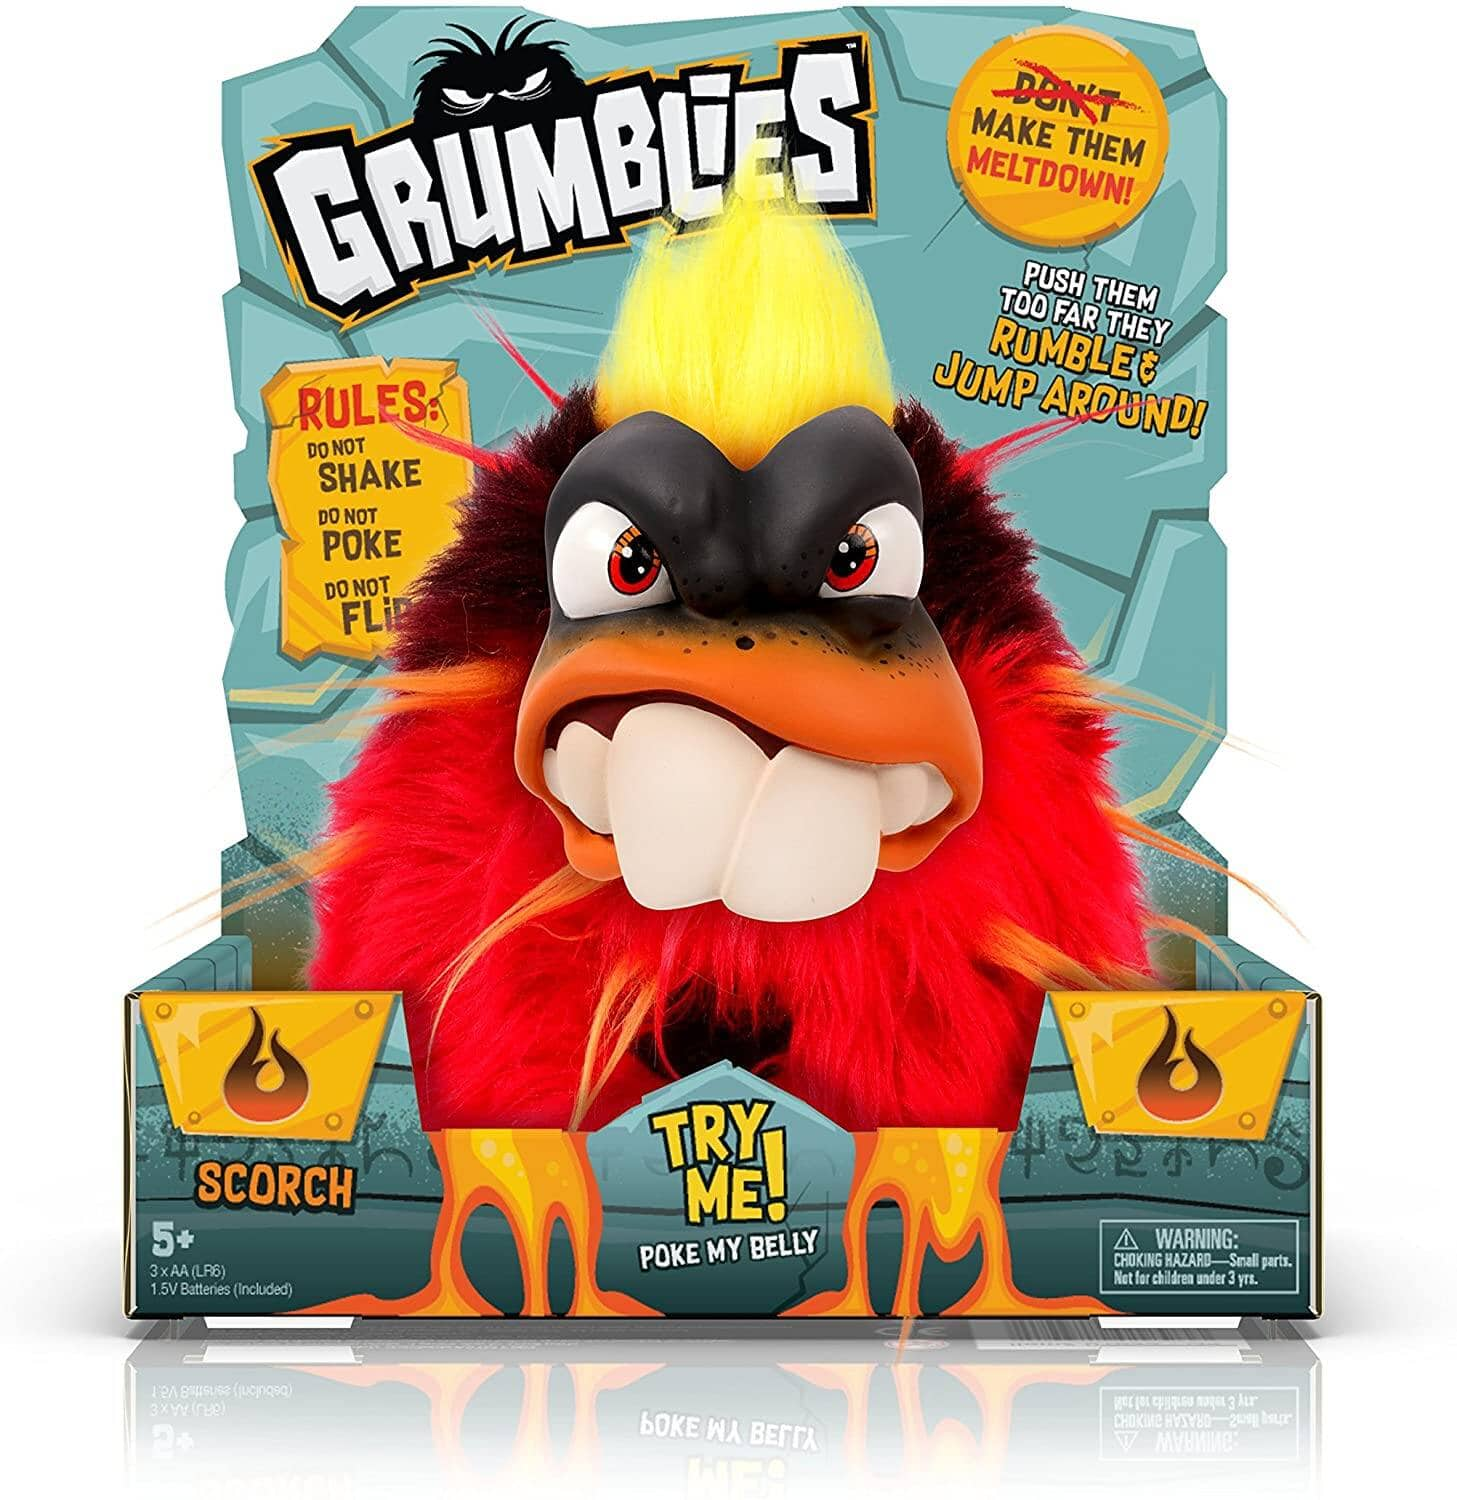 Grumblies Scorch Kids' Toy (red) $6.25 + Free Shipping w/ Prime or on $25+